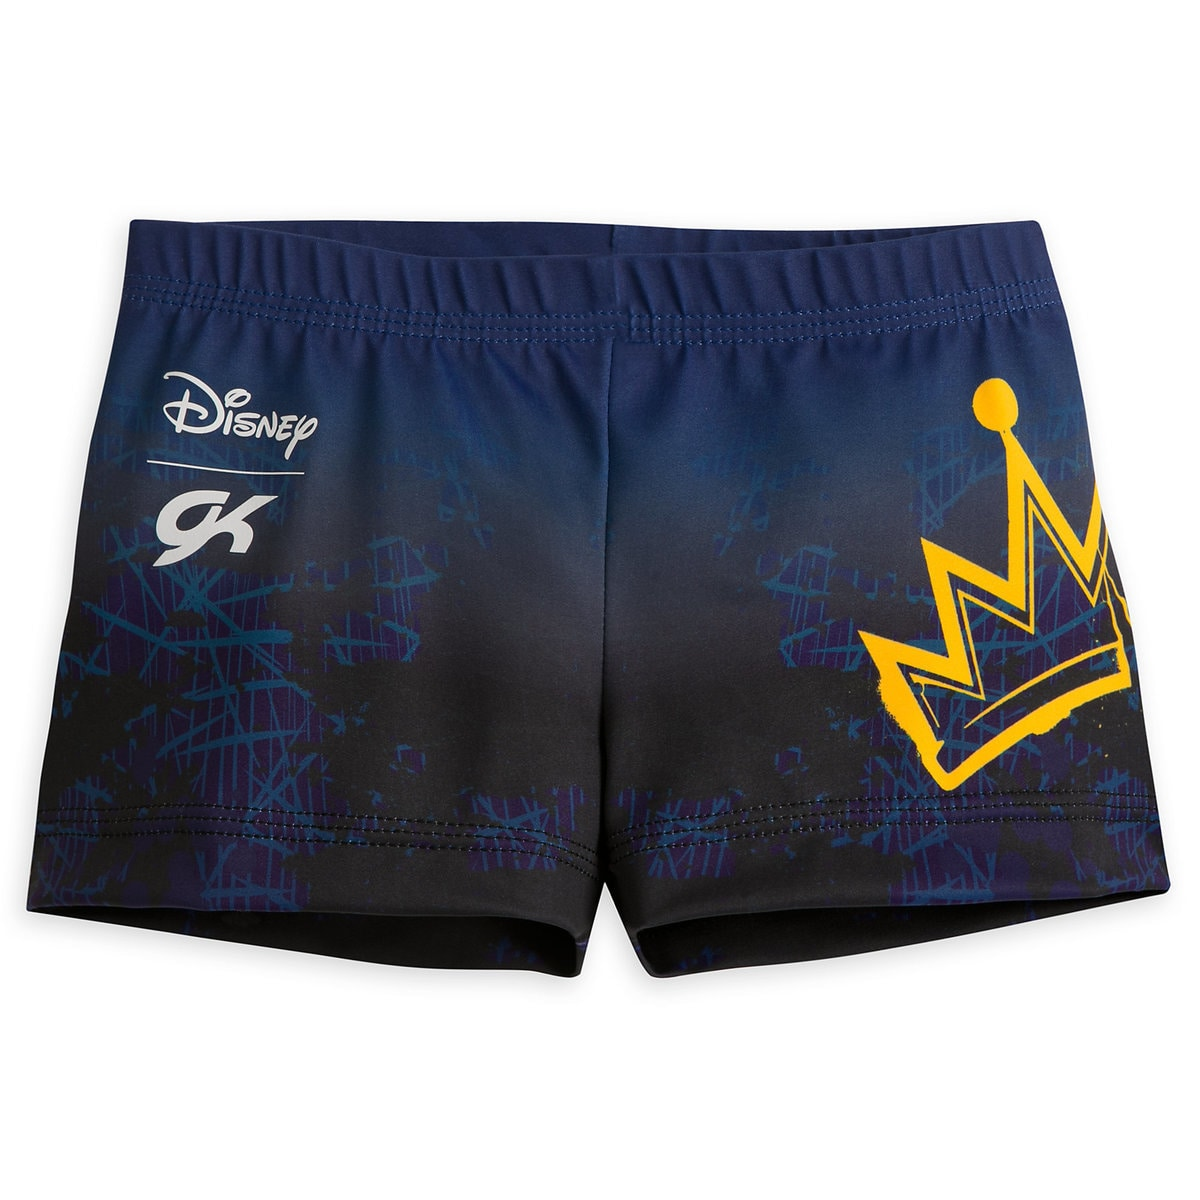 d239aa1a1f9c Product Image of Evie Shorts - Descendants - Girls # 1